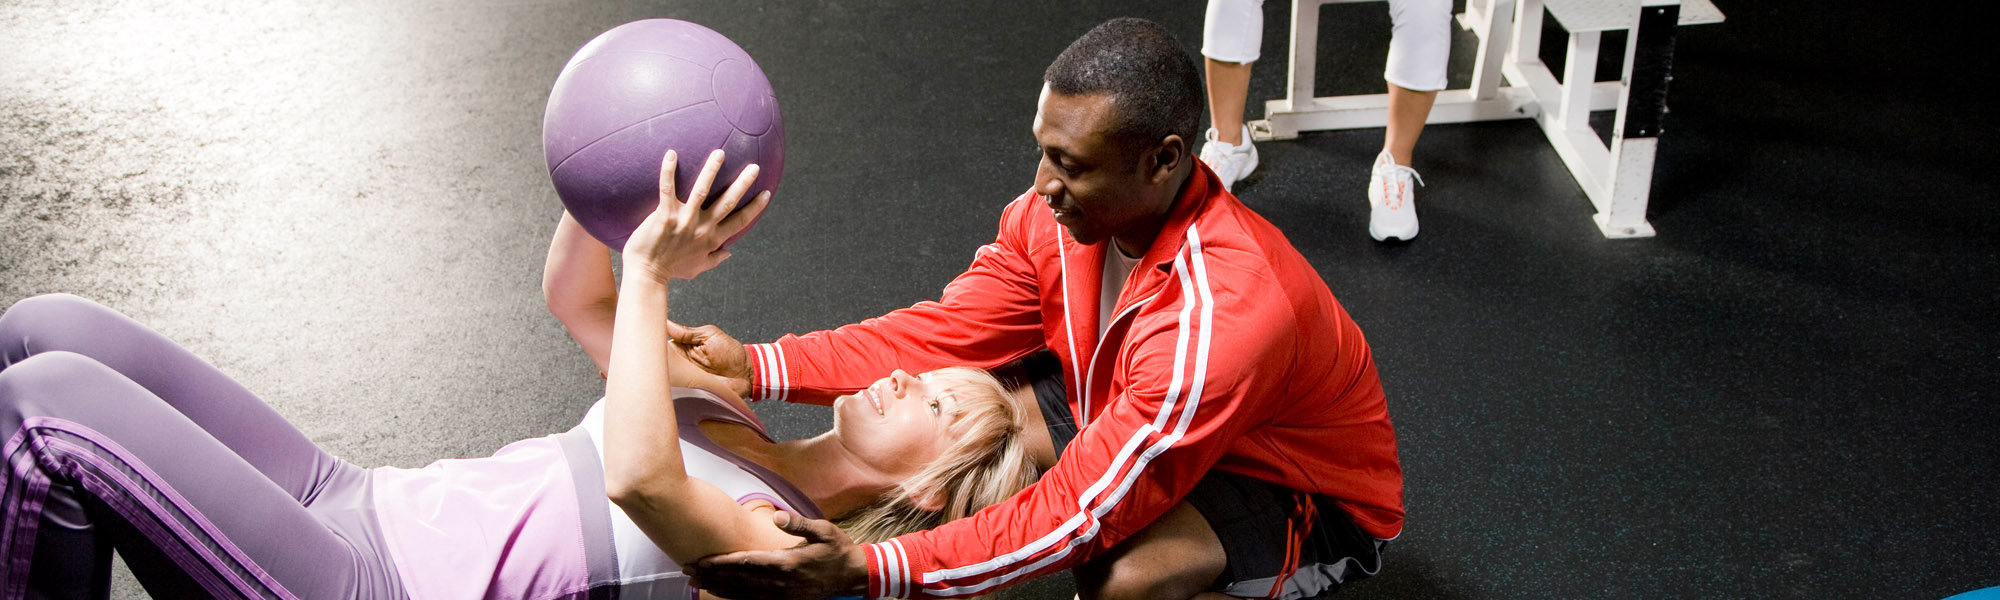 african american trainer helping young white woman workout with medicine ball equipment